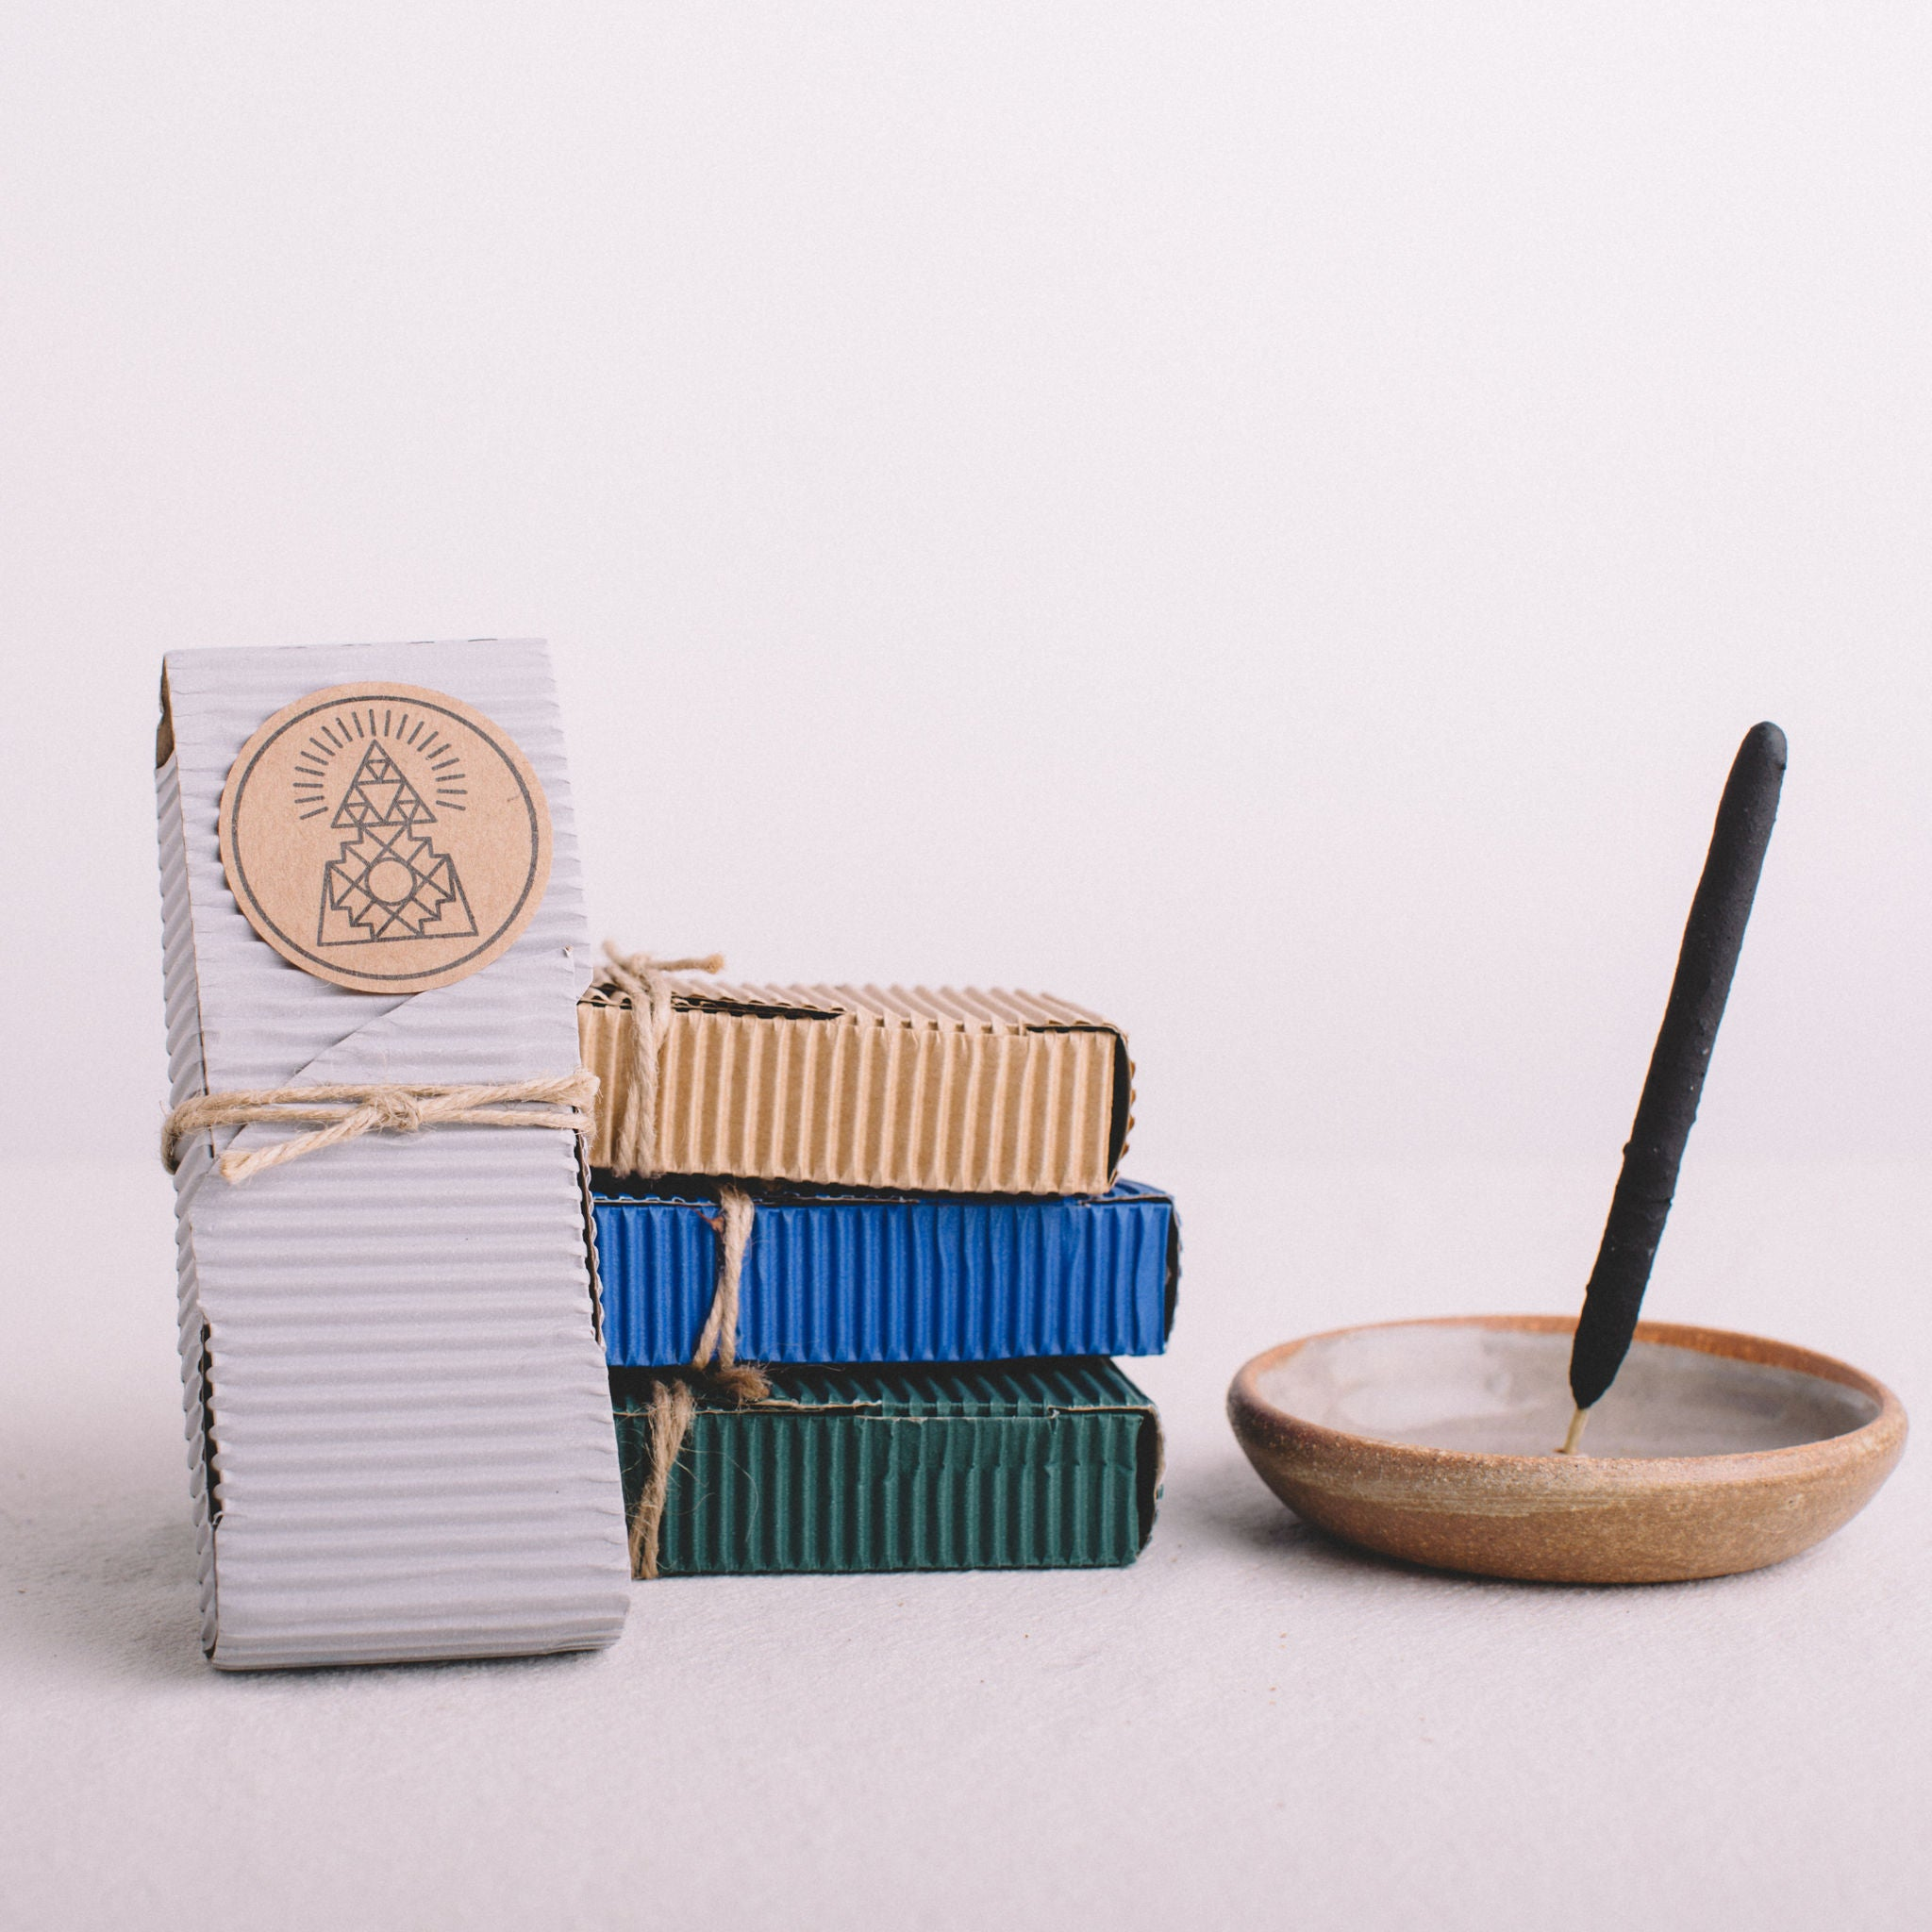 INCAUSA || BREU RESIN INCENSE